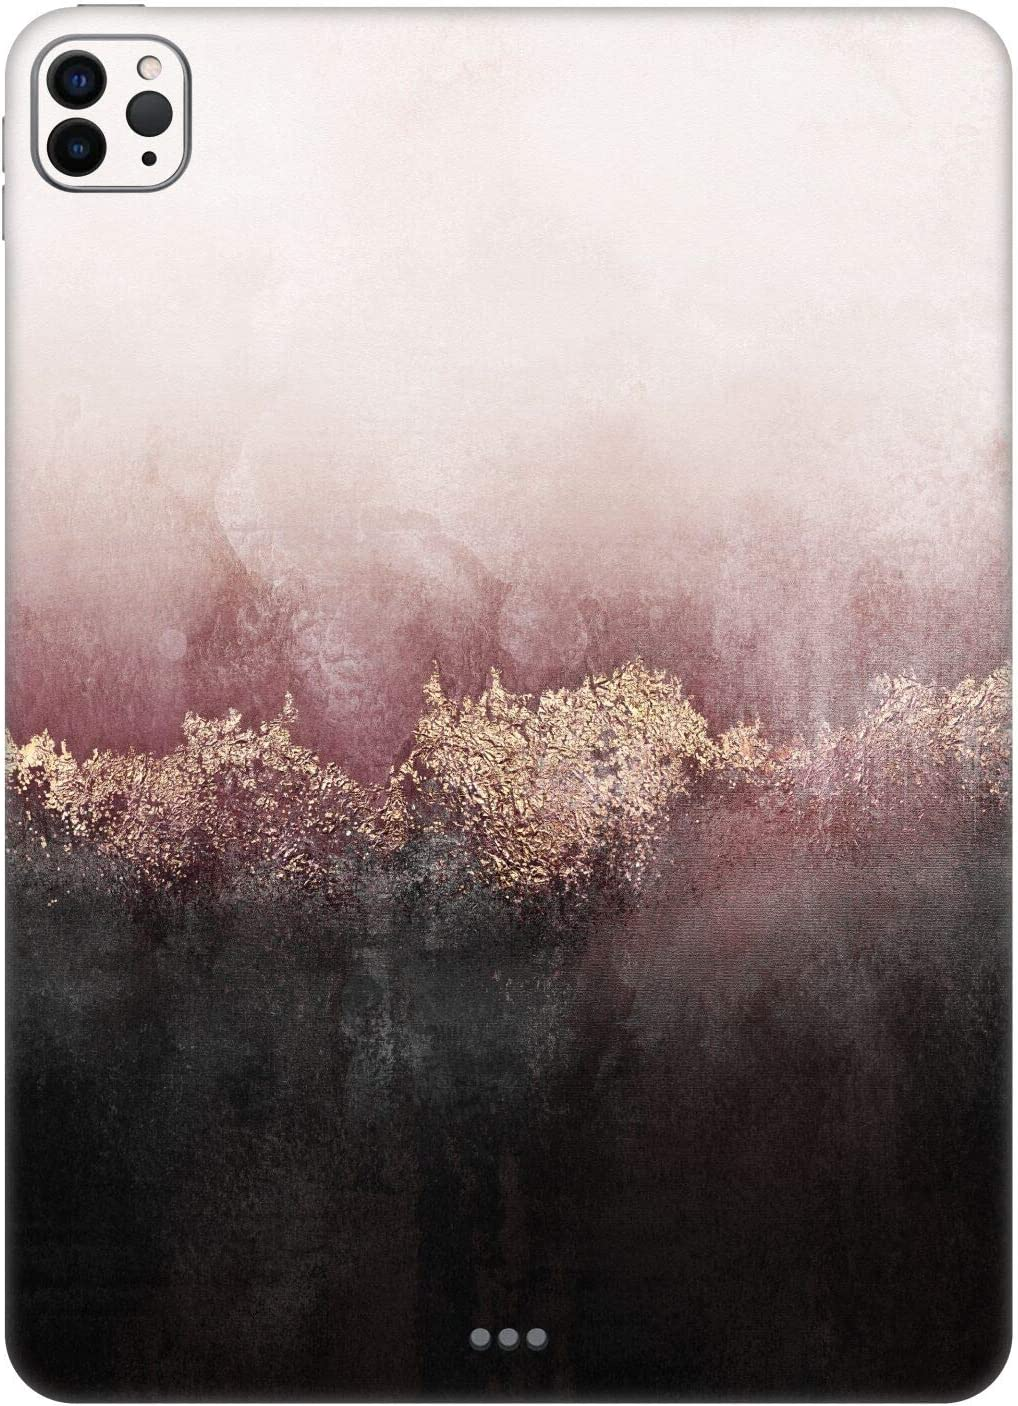 Head Case Designs Officially Licensed Elisabeth Fredriksson Pink Sky Sparkles Glossy Vinyl Sticker Skin Decal Cover Compatible with Apple iPad Pro 11 (2020)